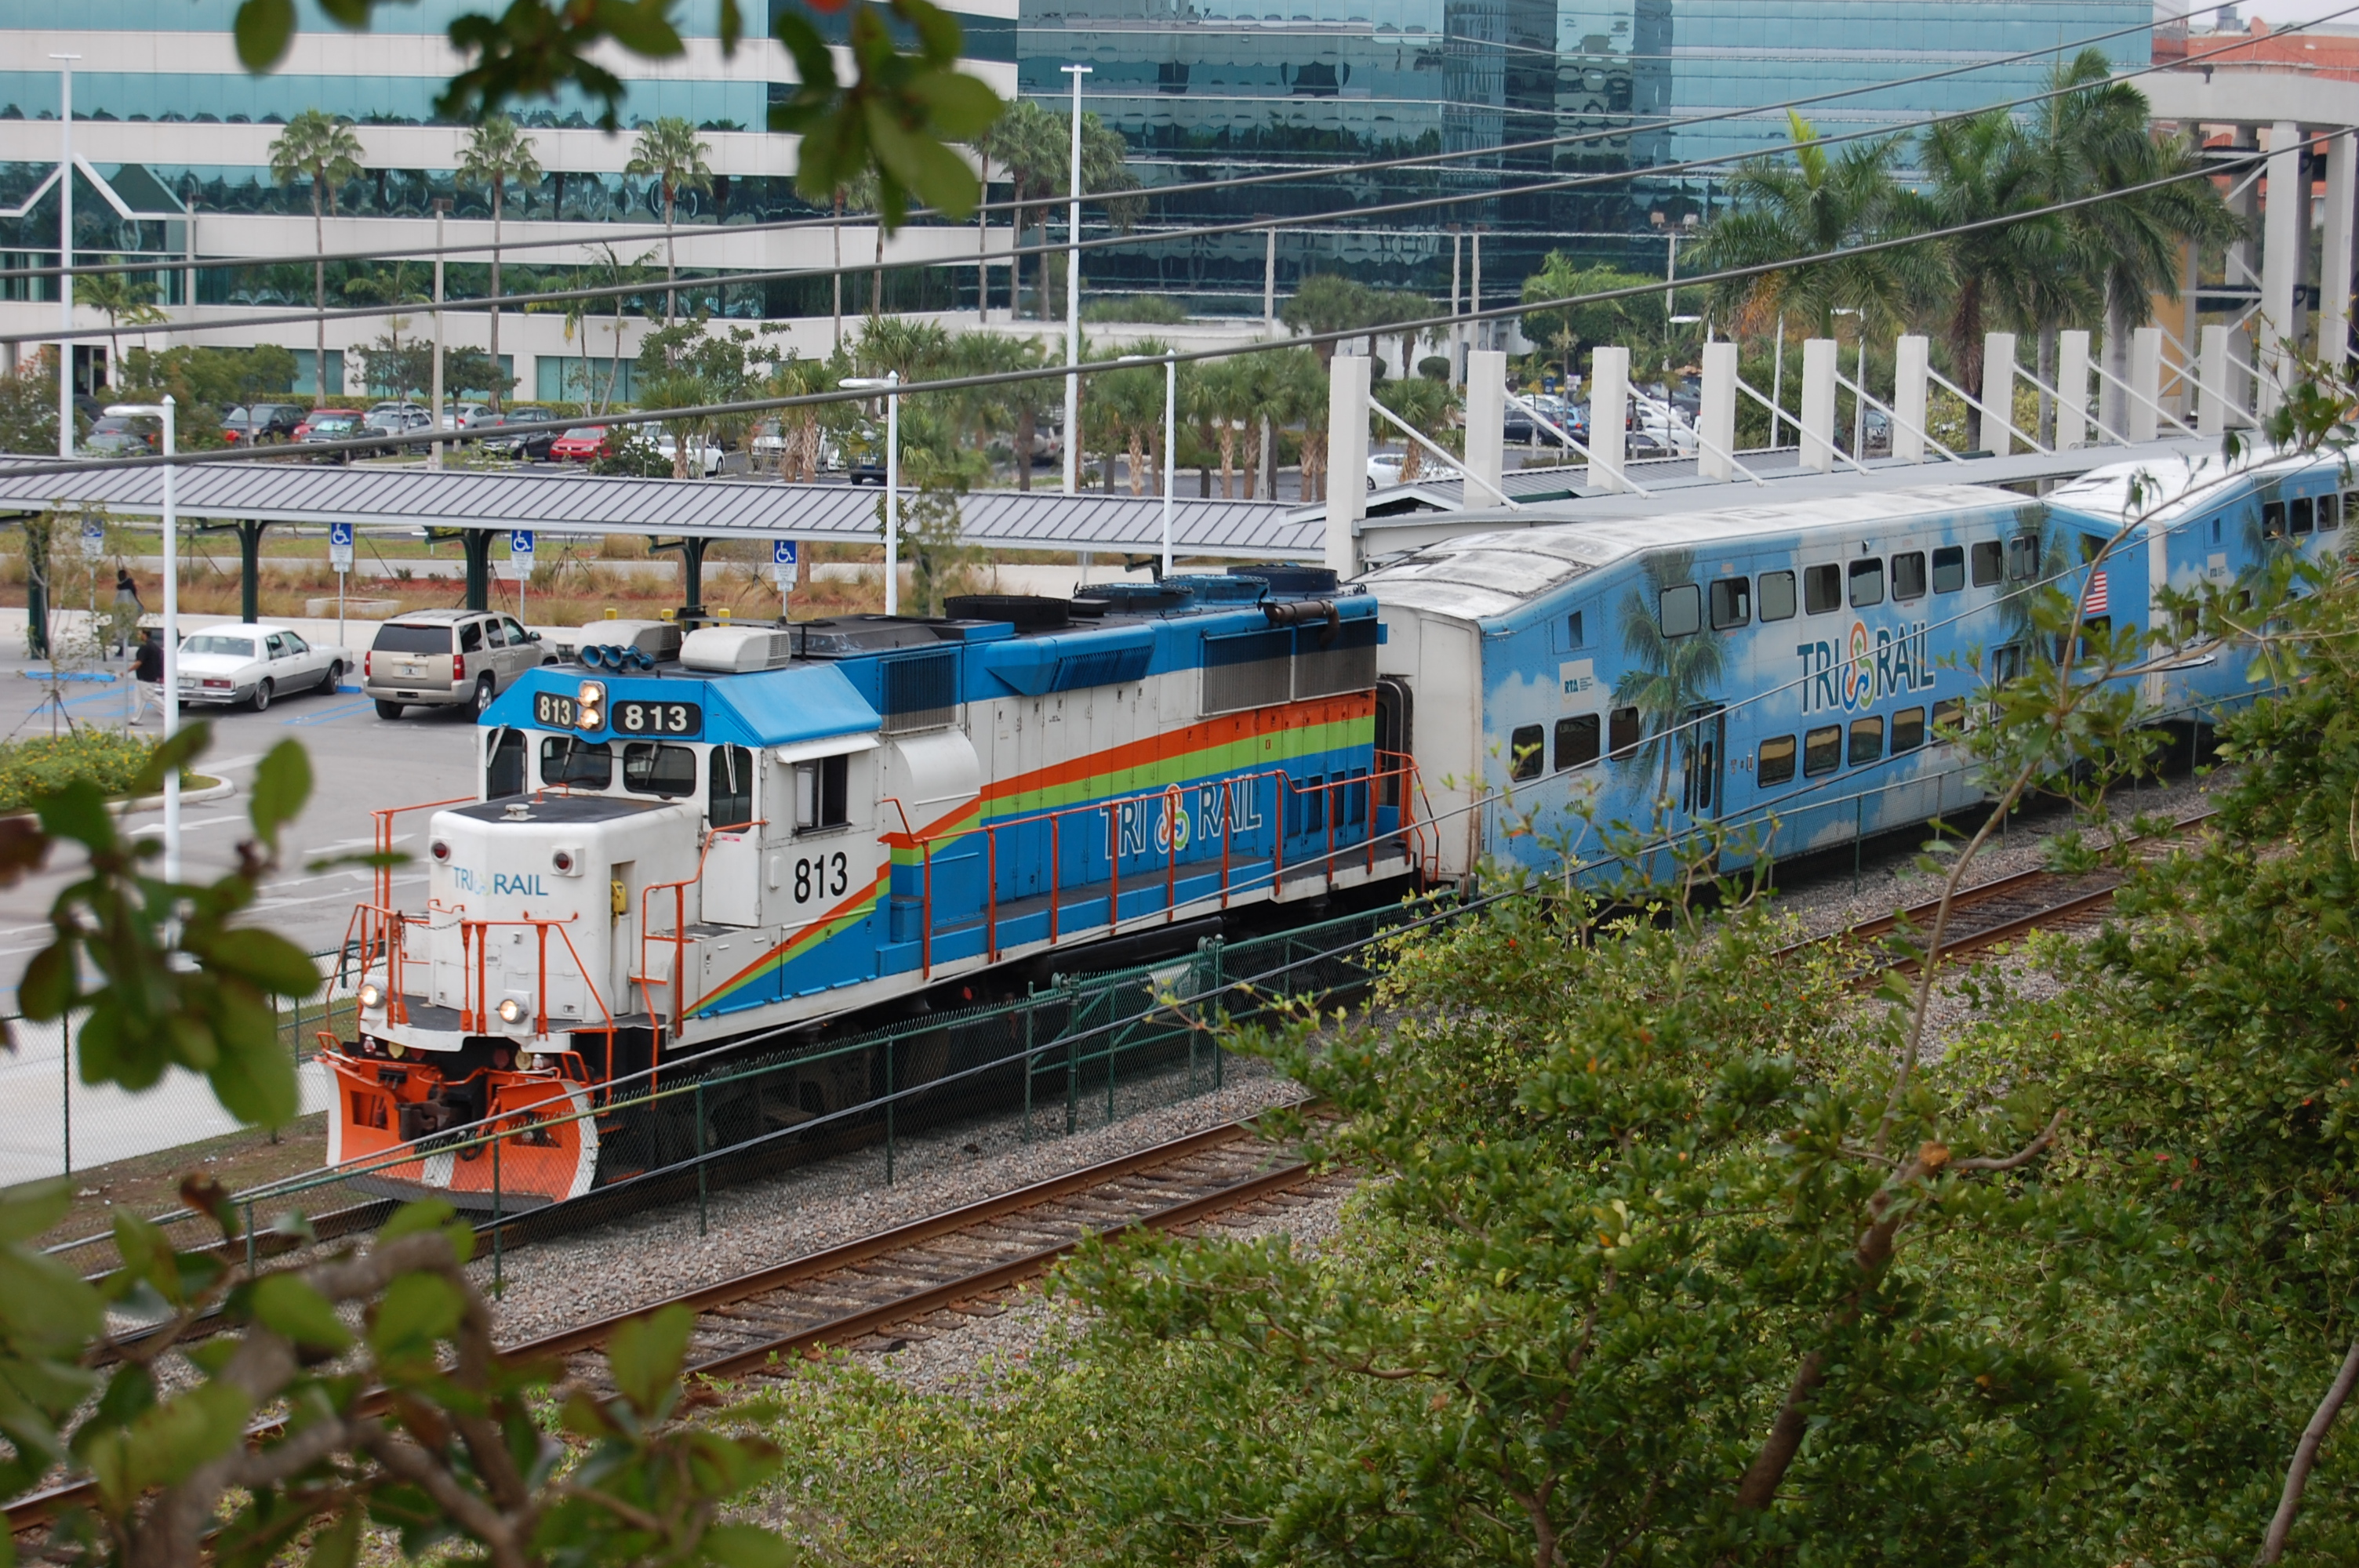 Photo BrowardMPO TriRail v06